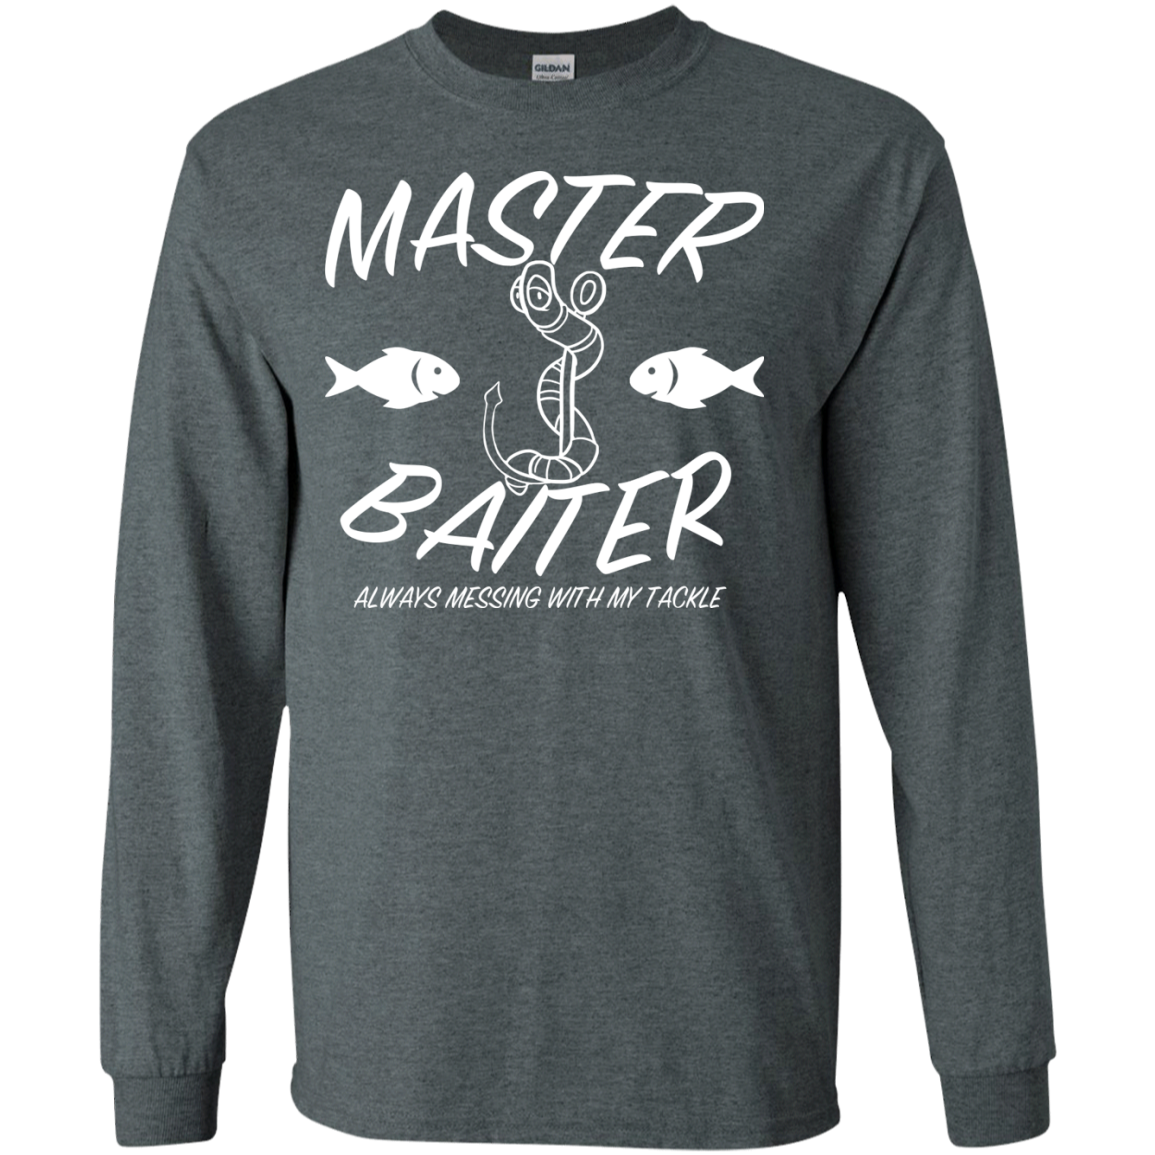 Master Baiter Always Messing With My Tackle Long Sleeve Tees